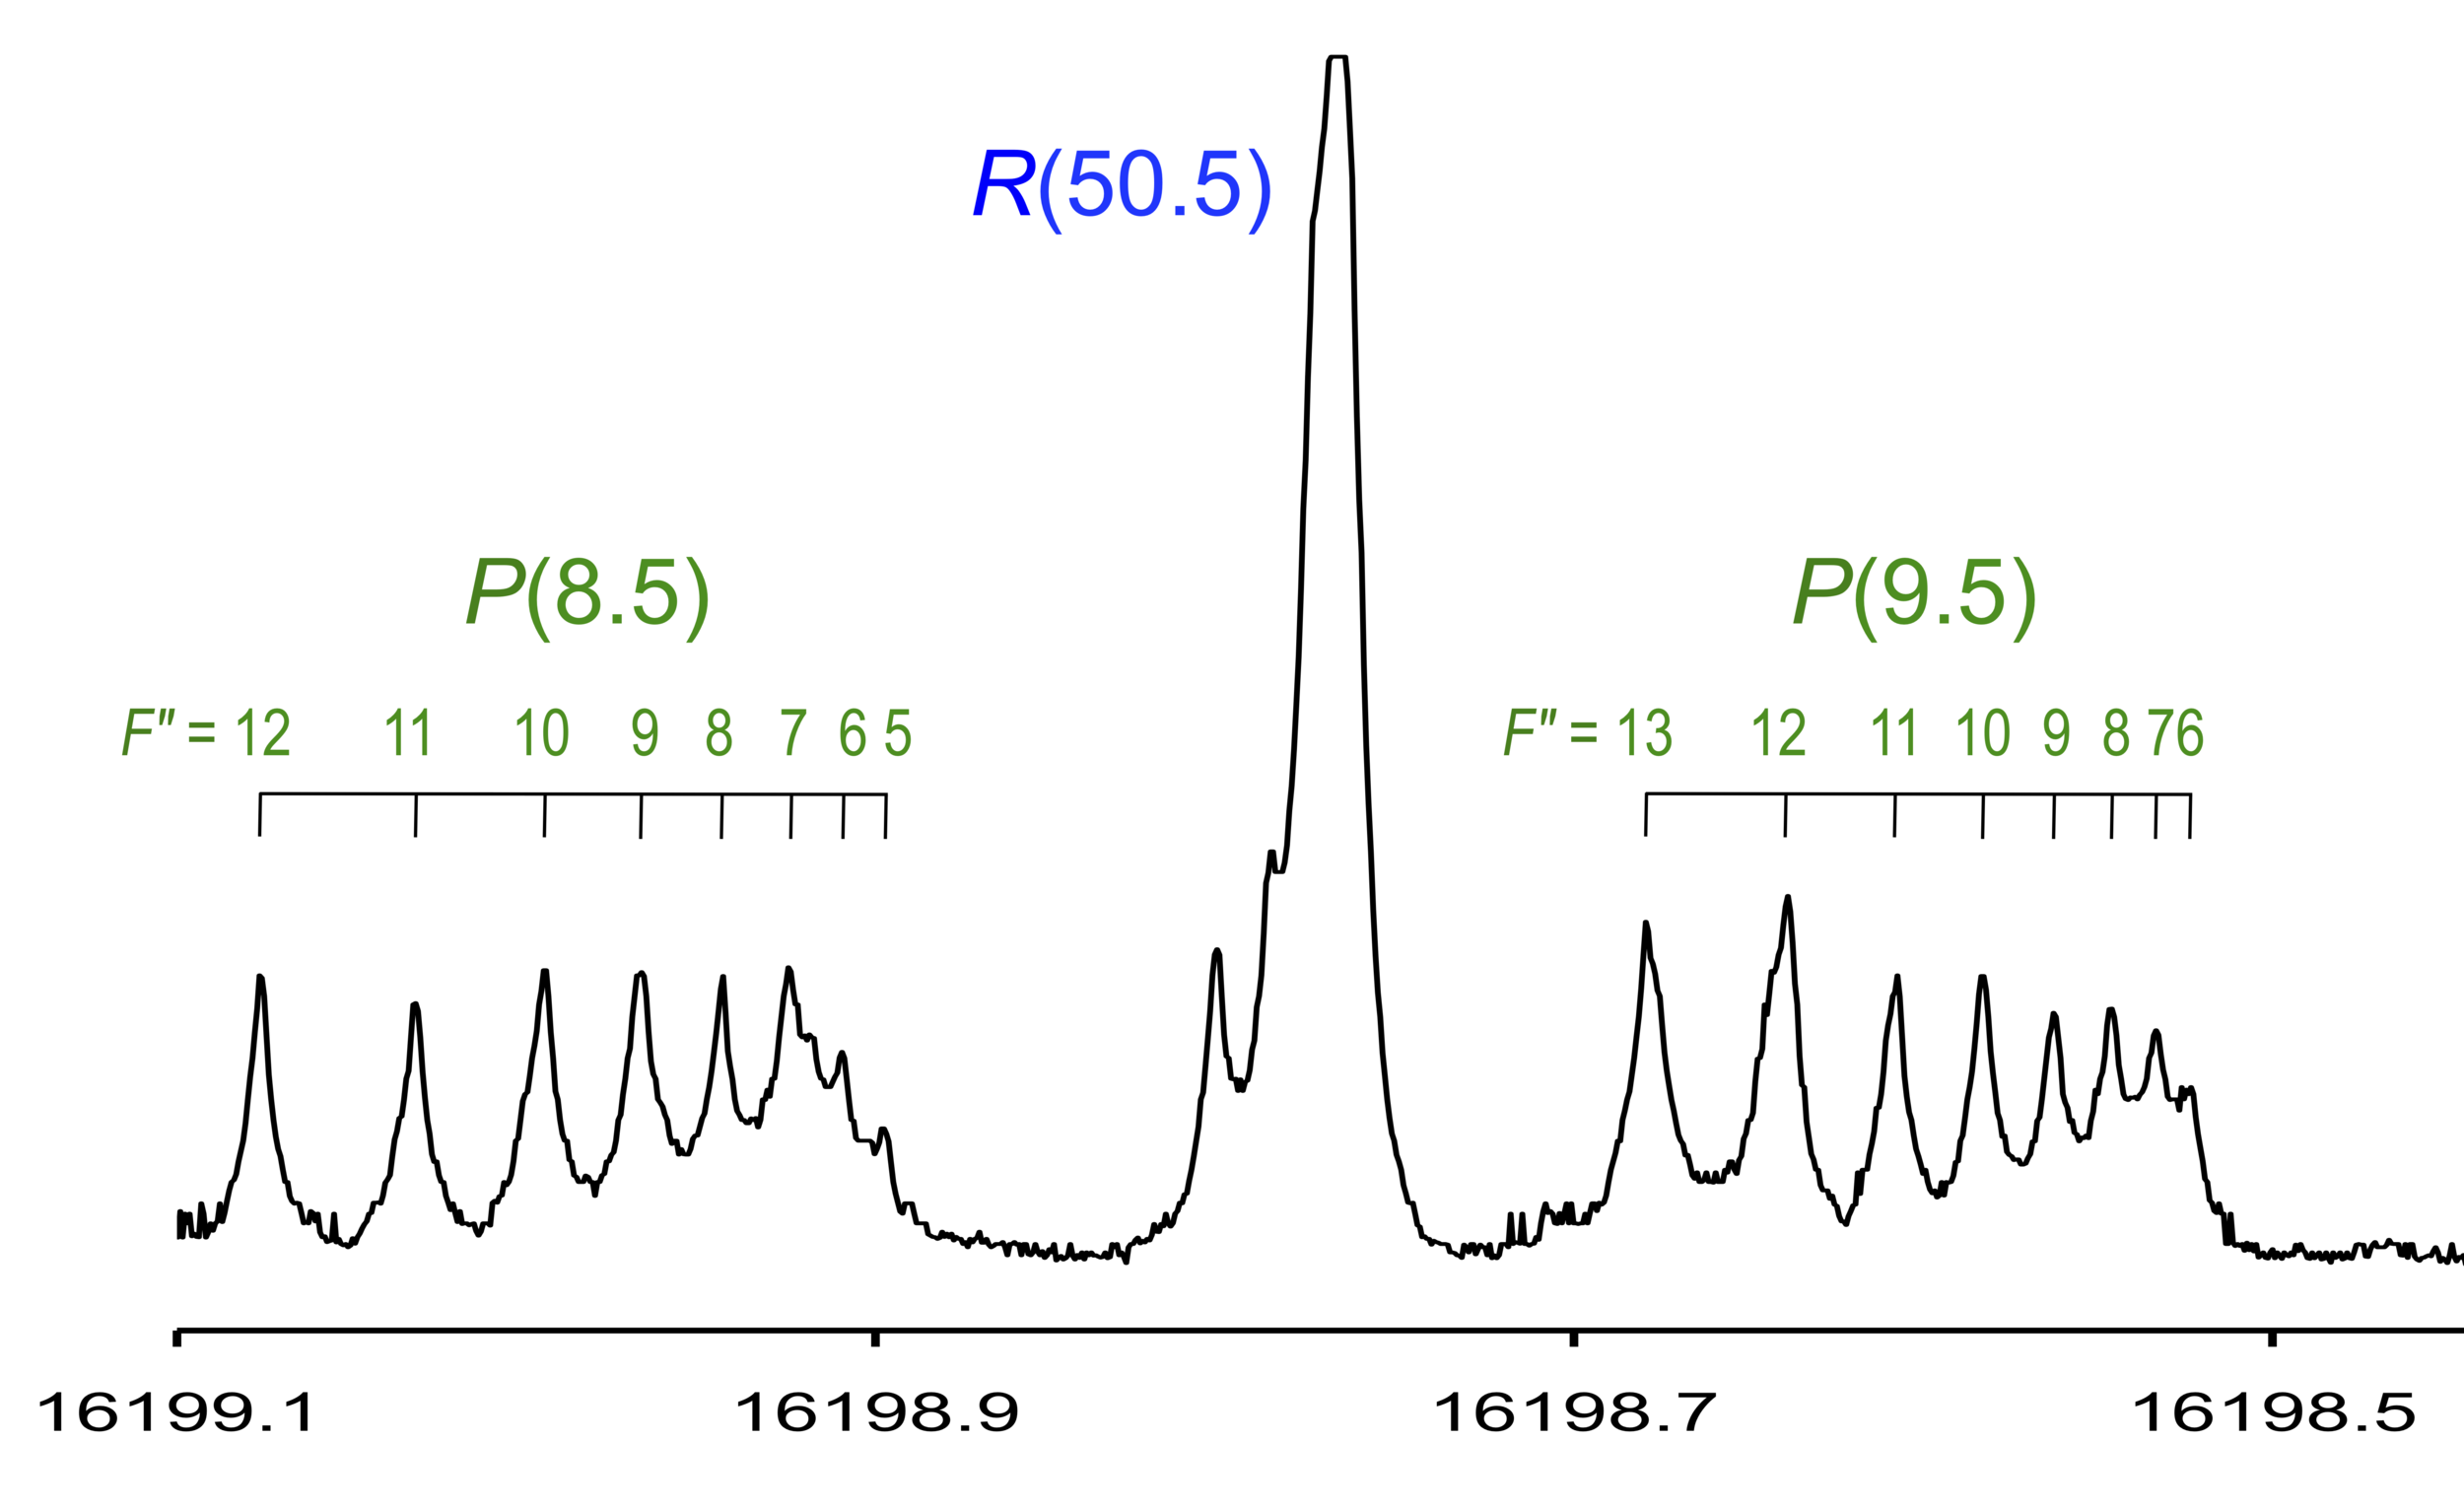 Two electronic bands of tantalum sulfide (TaS) spectrum